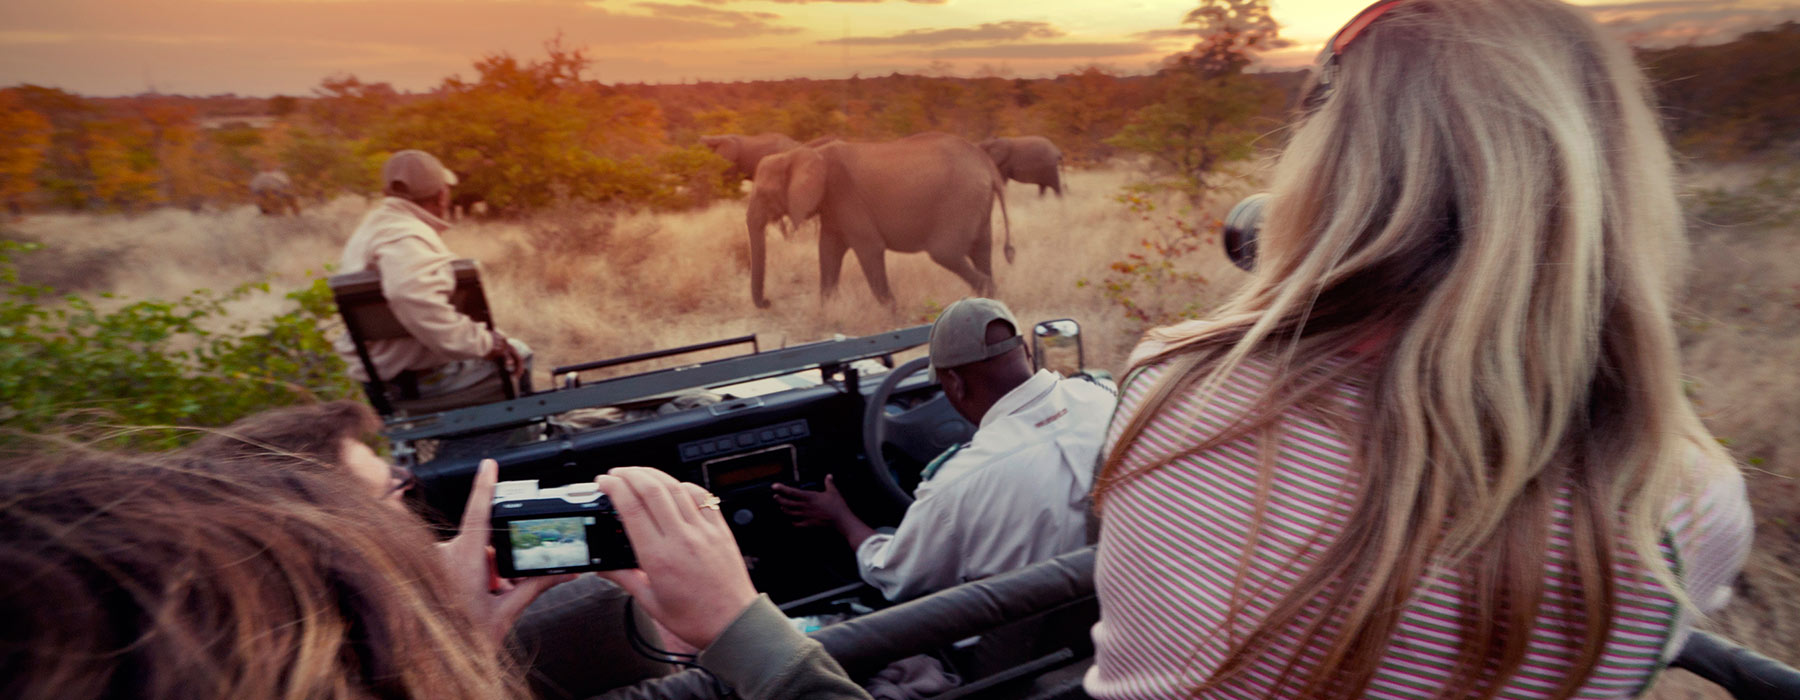 What To Take On Tanzania Safari